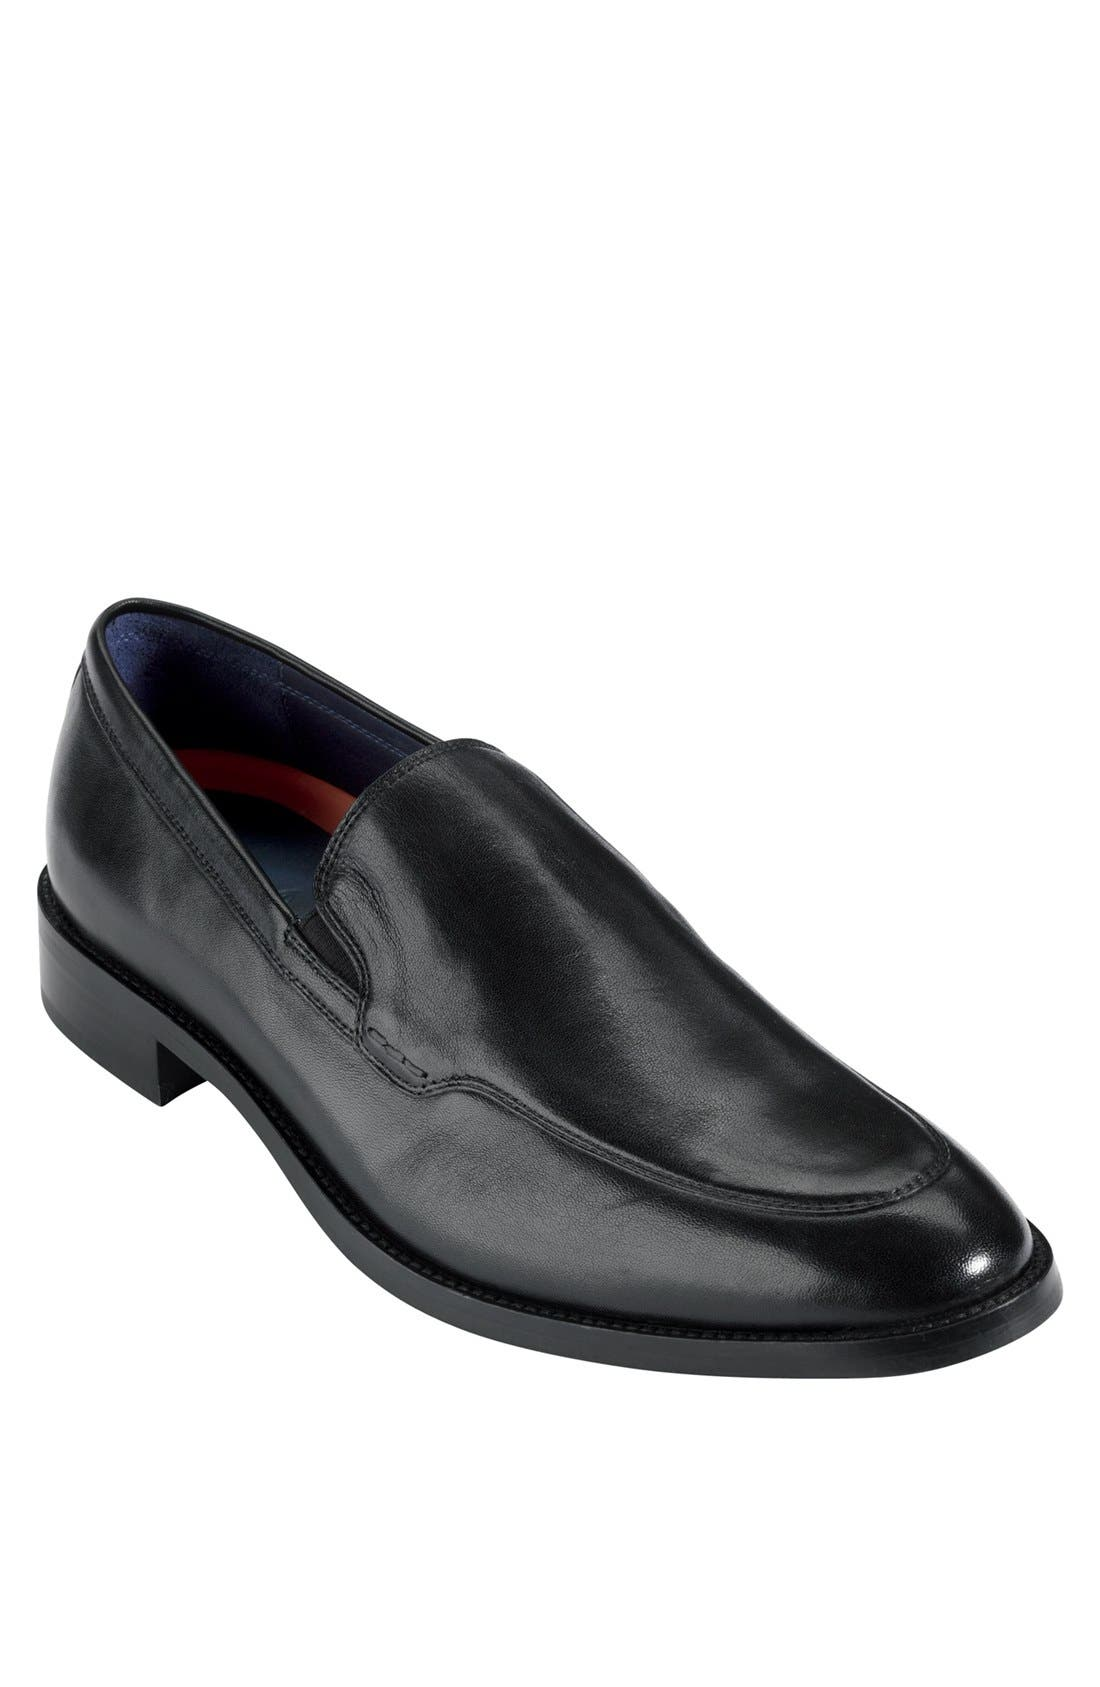 Alternate Image 1 Selected - Cole Haan 'Lenox Hill' Venetian Loafer (Men)